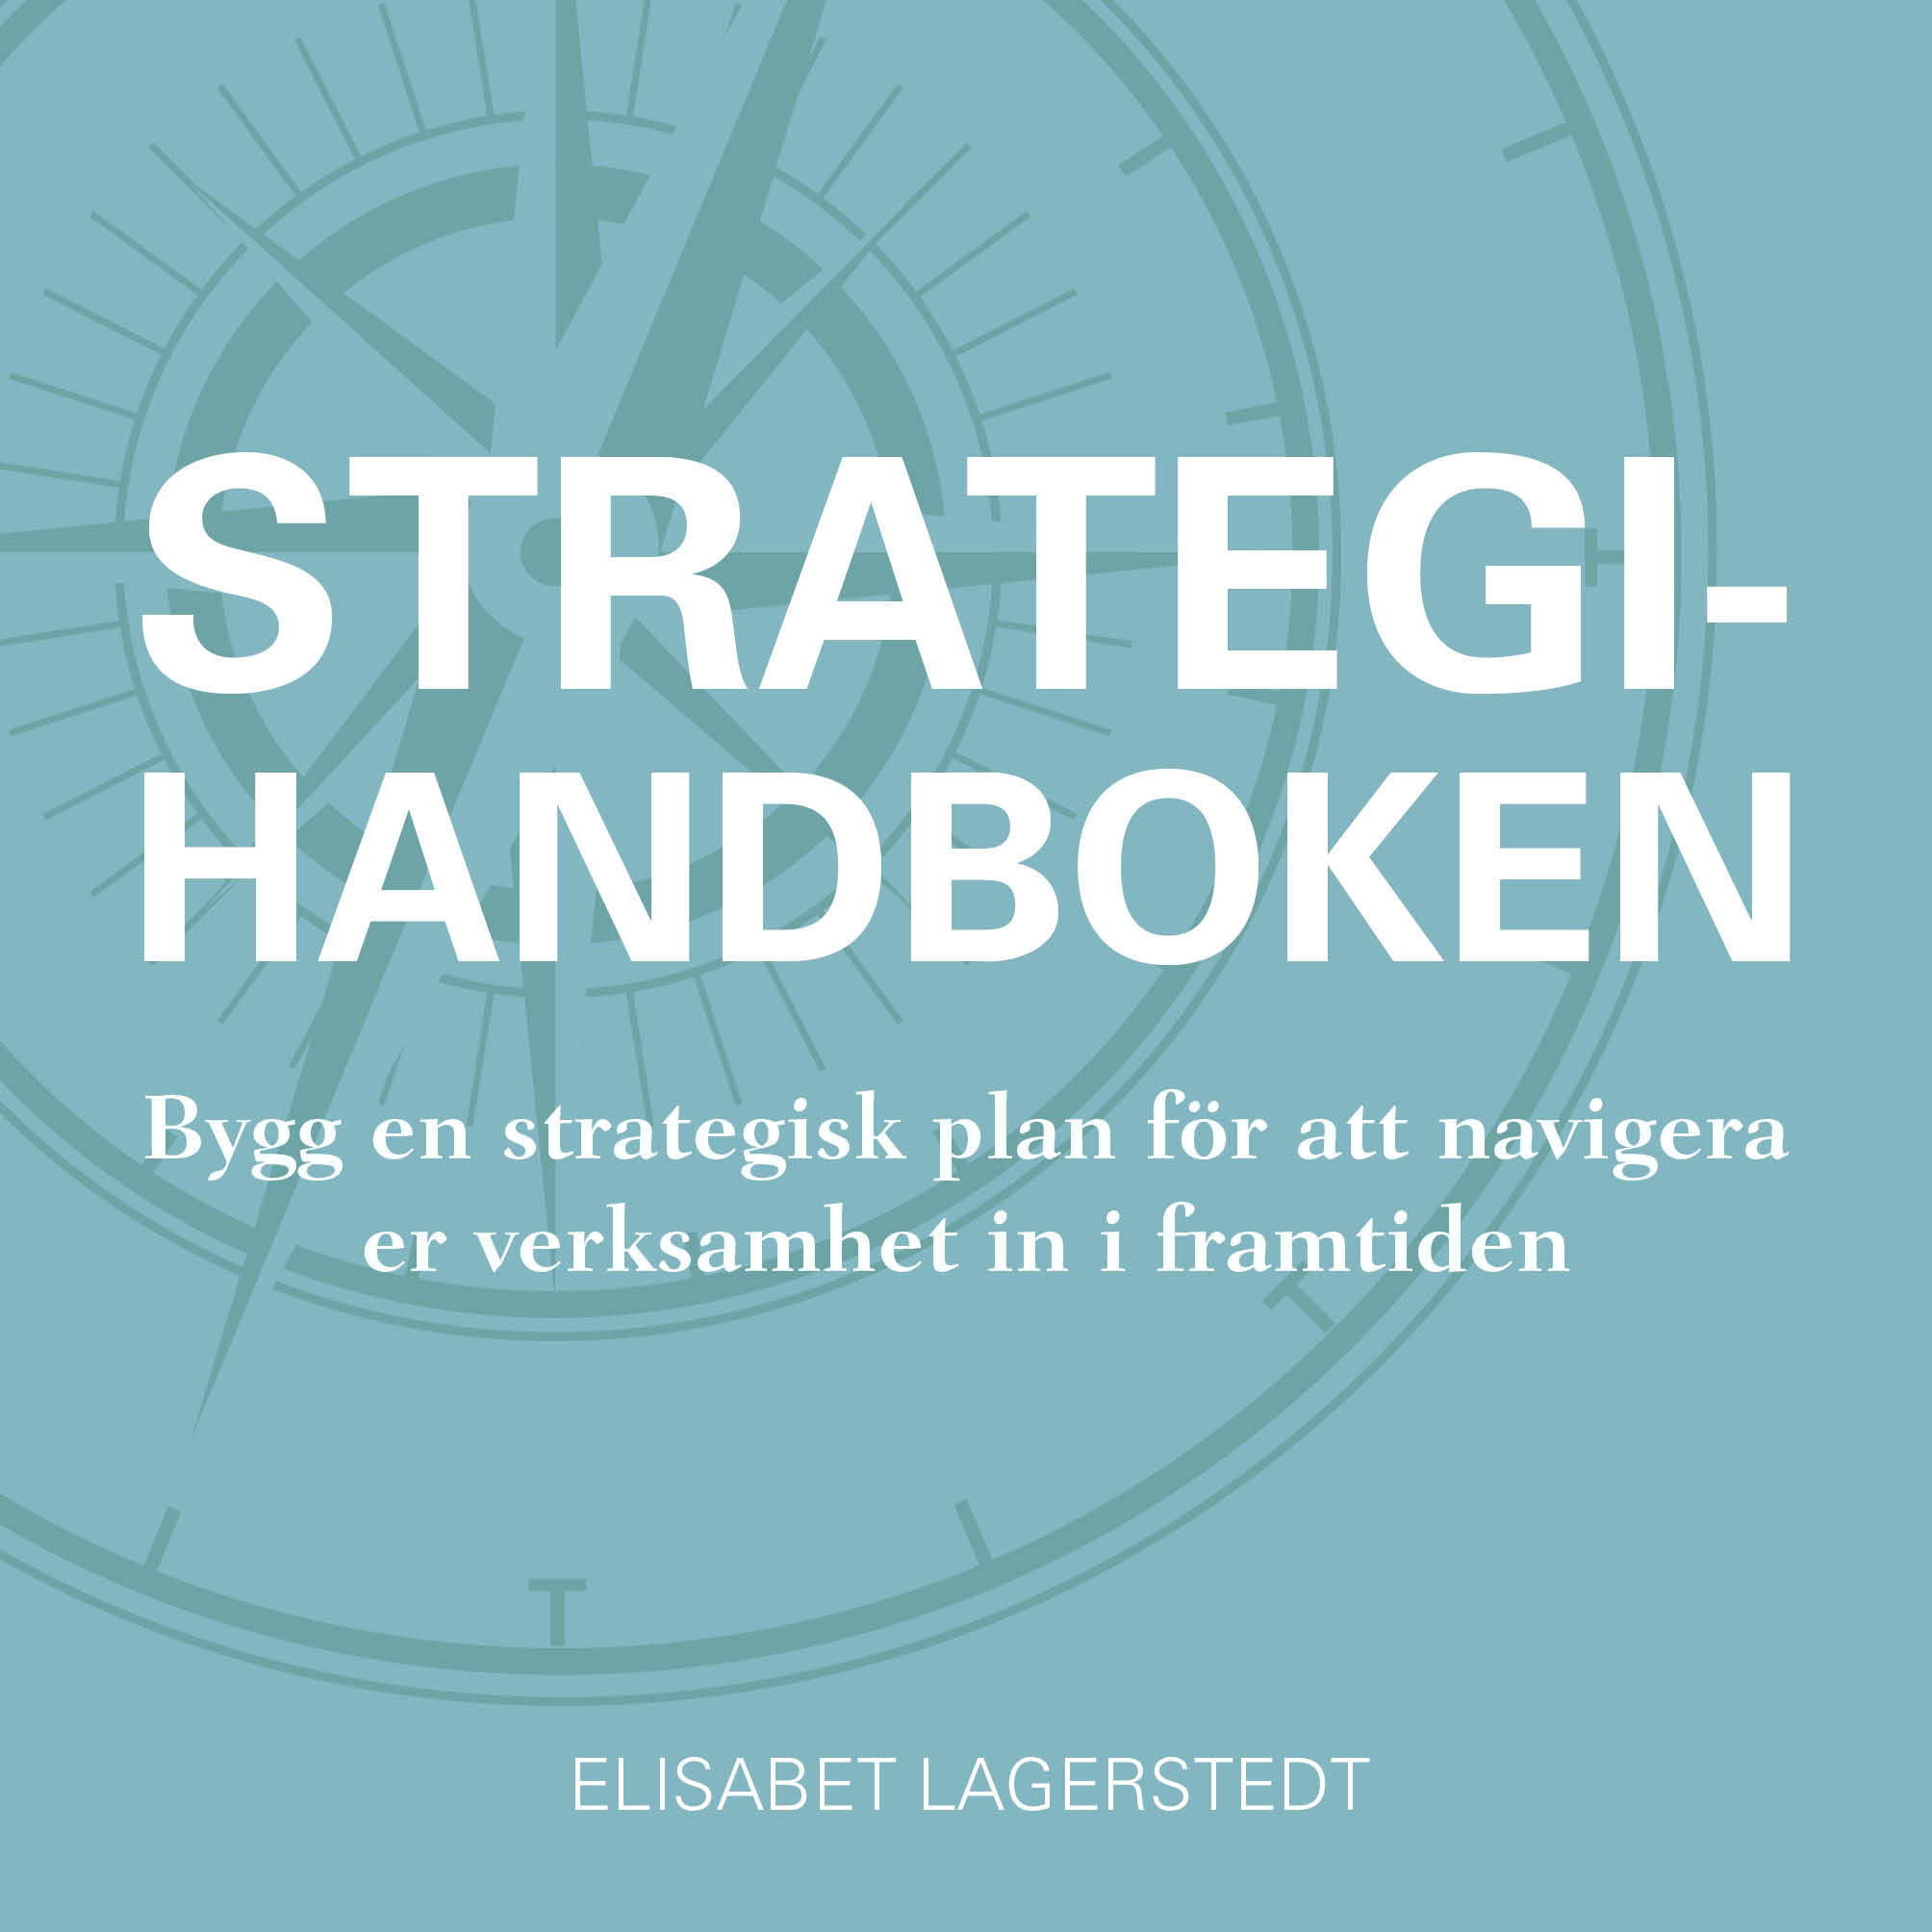 Strategihandboken